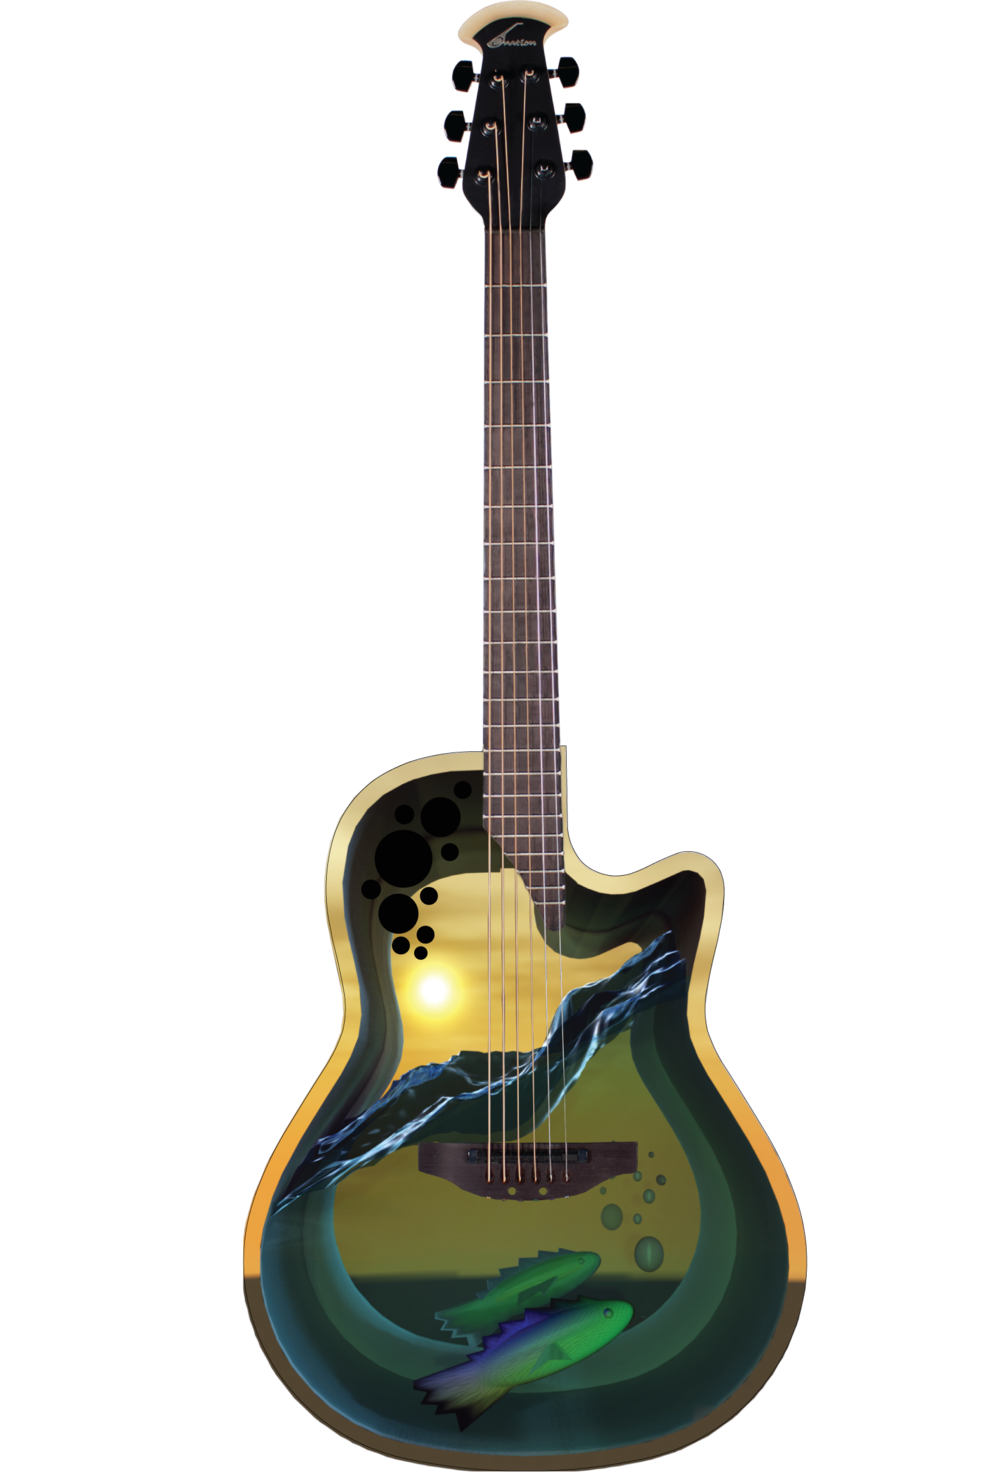 ovation guitar full.3.png